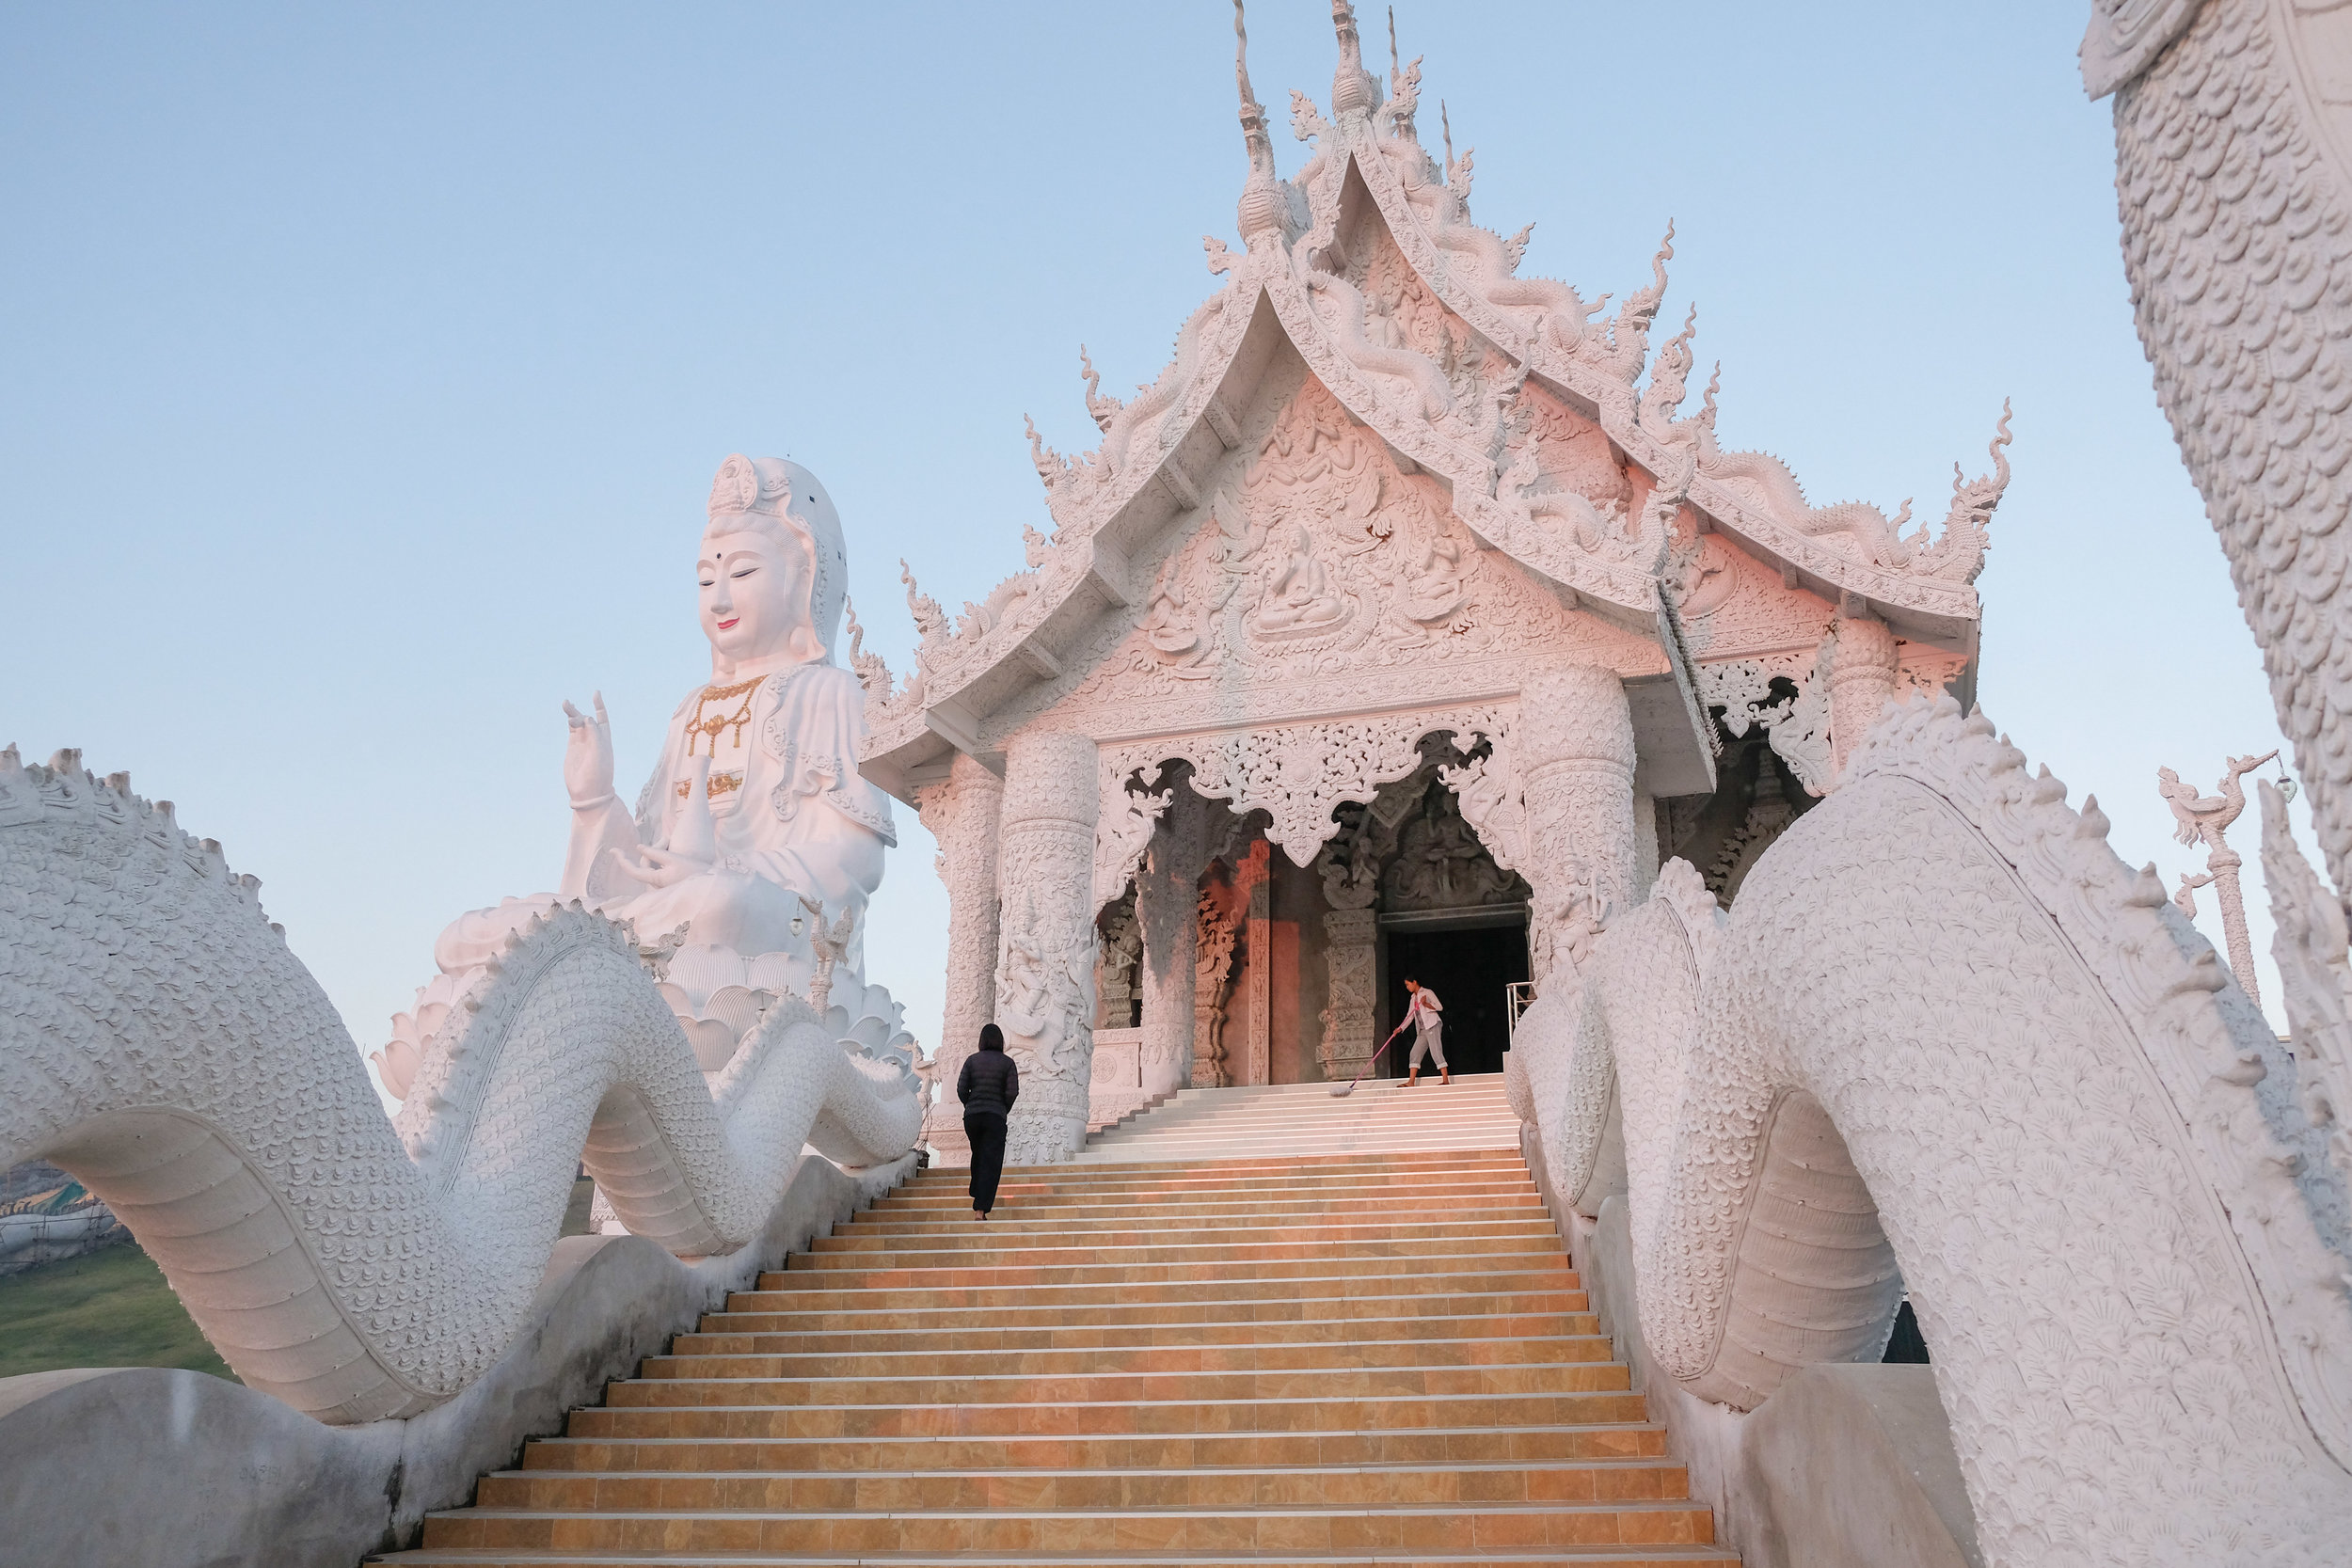 Chiang Rai: more than just the white temple - March 28th, 2018